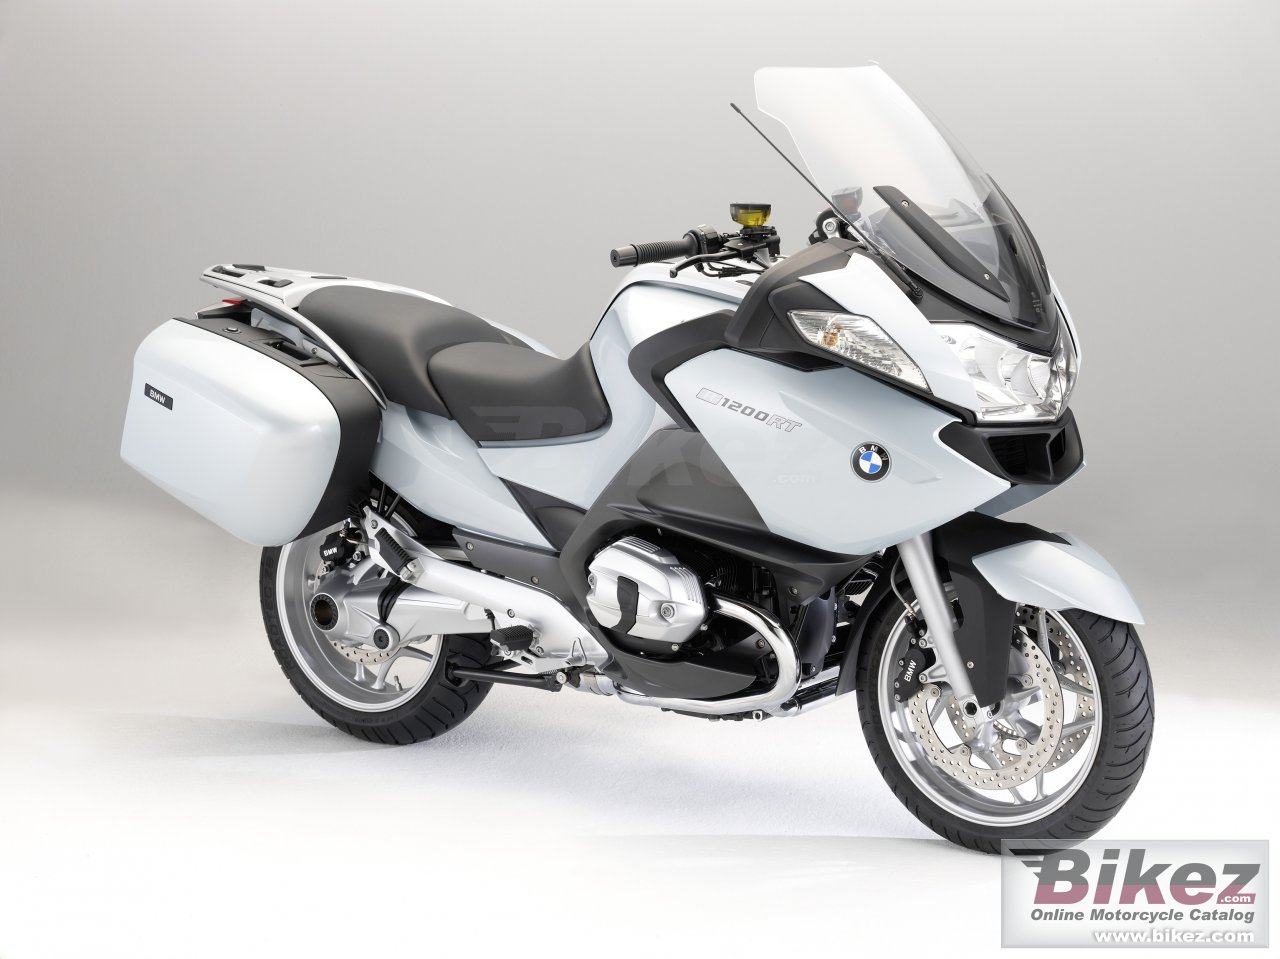 Big BMW r 1200 rt picture and wallpaper from Bikez.com